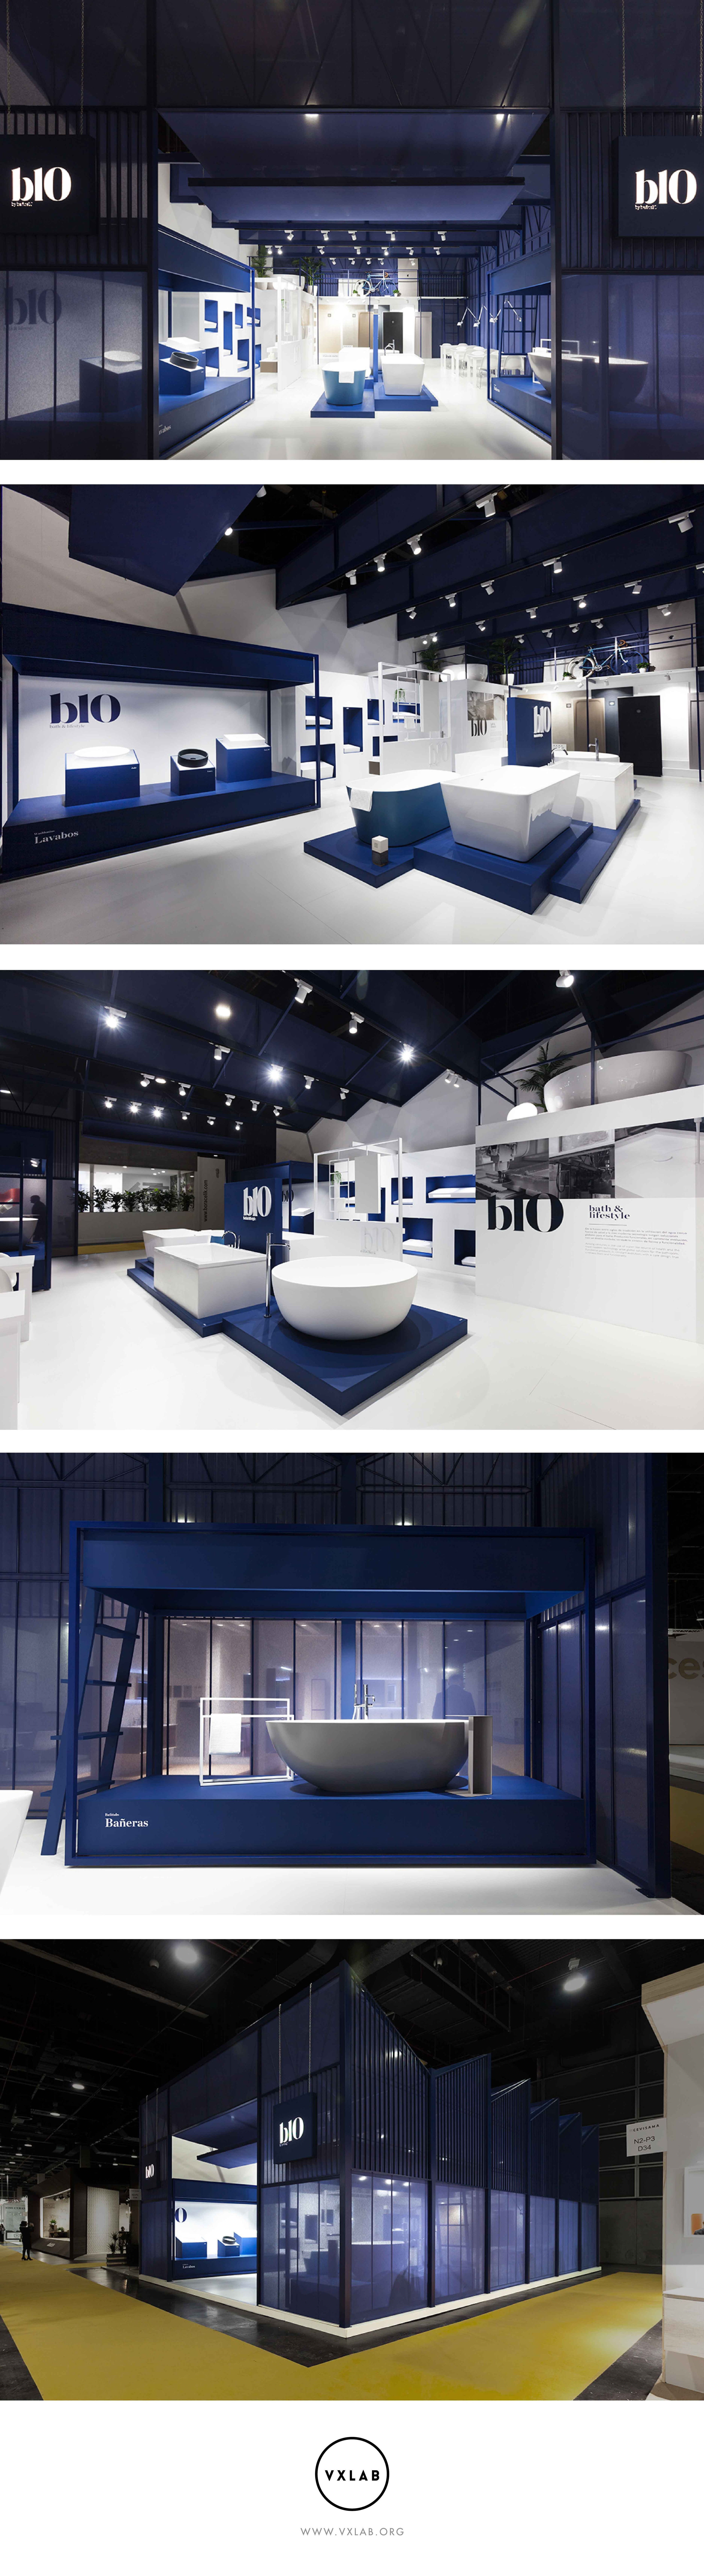 Interior design home base expo - B10 Stand Cevisama 2017 Design Designdirection Ephemeral Architecture Interiordesign Exhibition